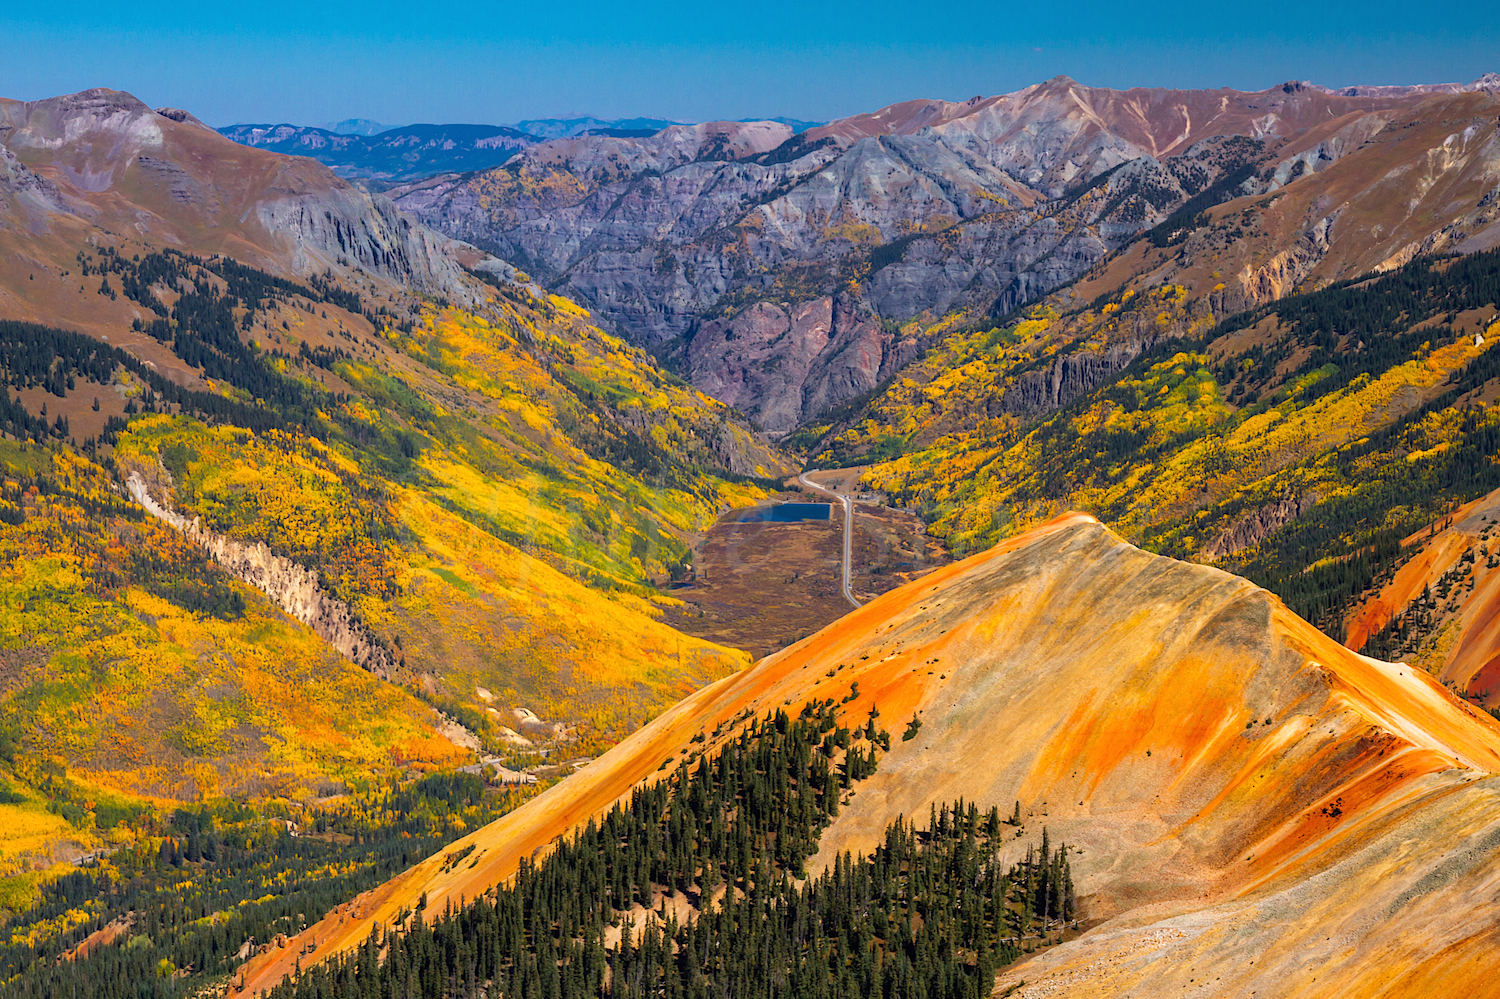 Red Mountain #3, Image #1185